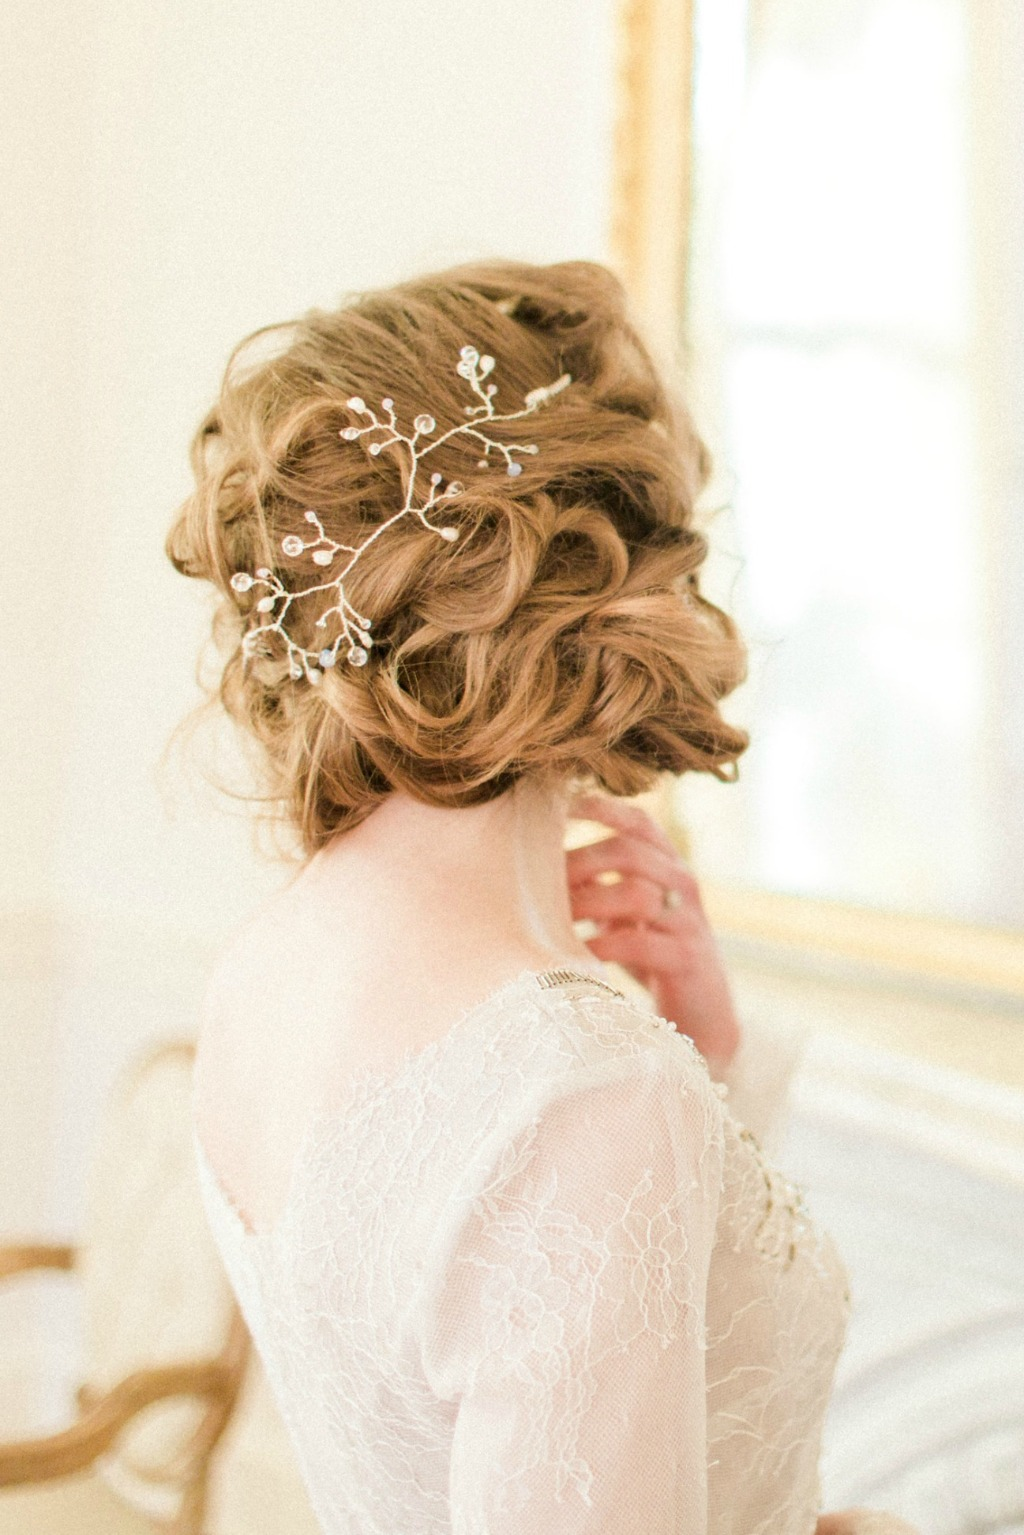 How to Wear a Bridal Hair Vine: Styling tips from the designer!